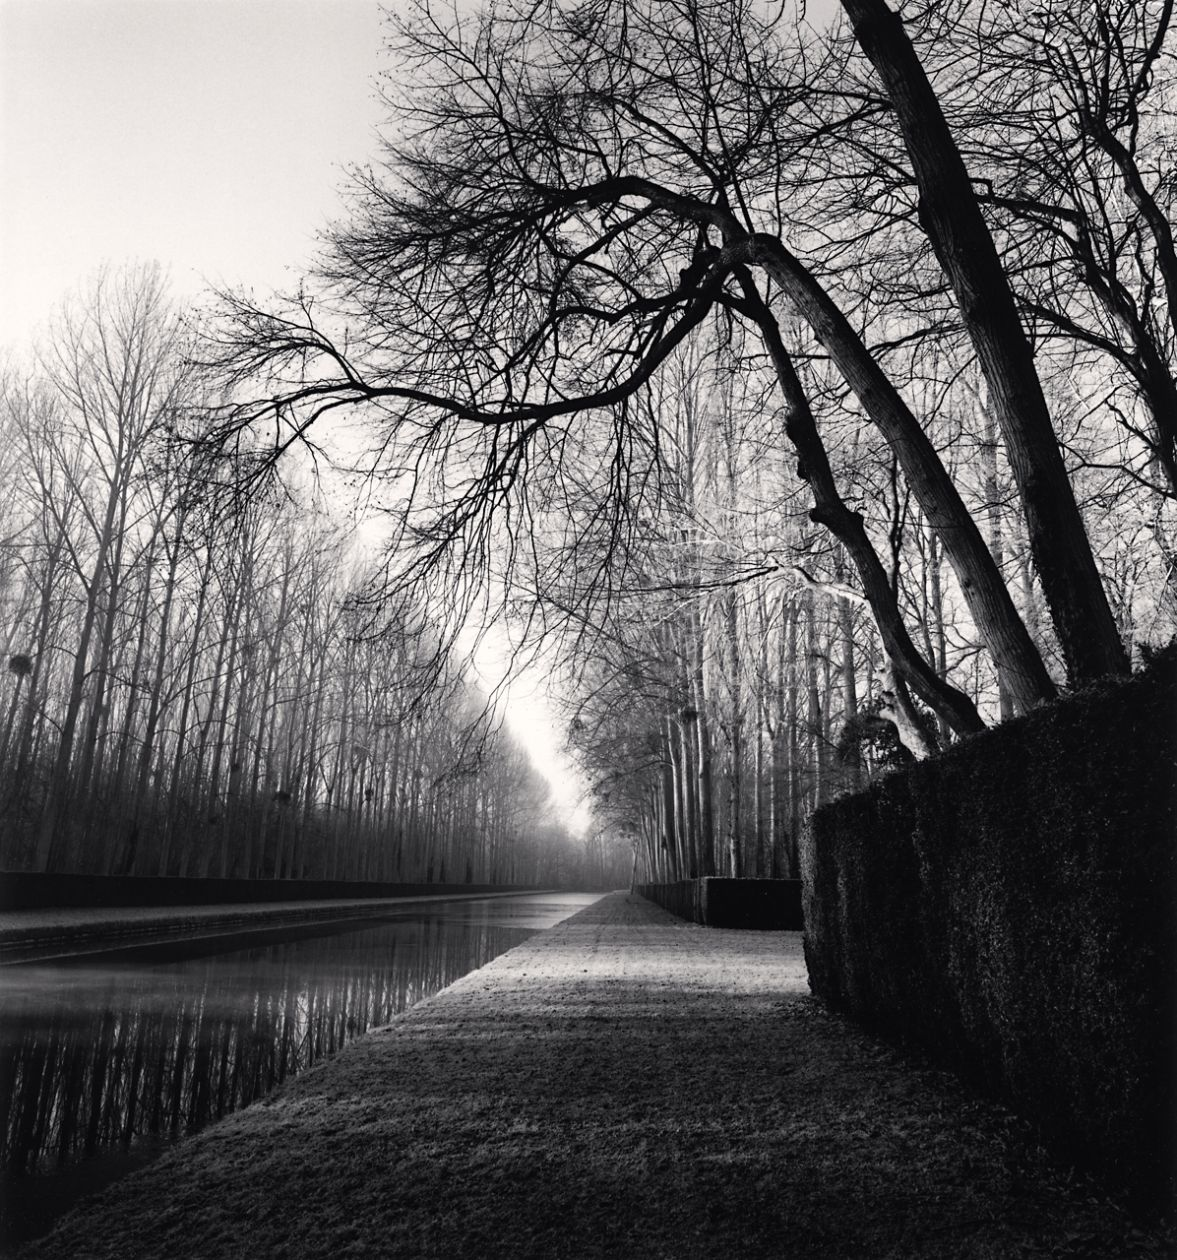 Light on Water, Courances (1997) by Michael Kenna